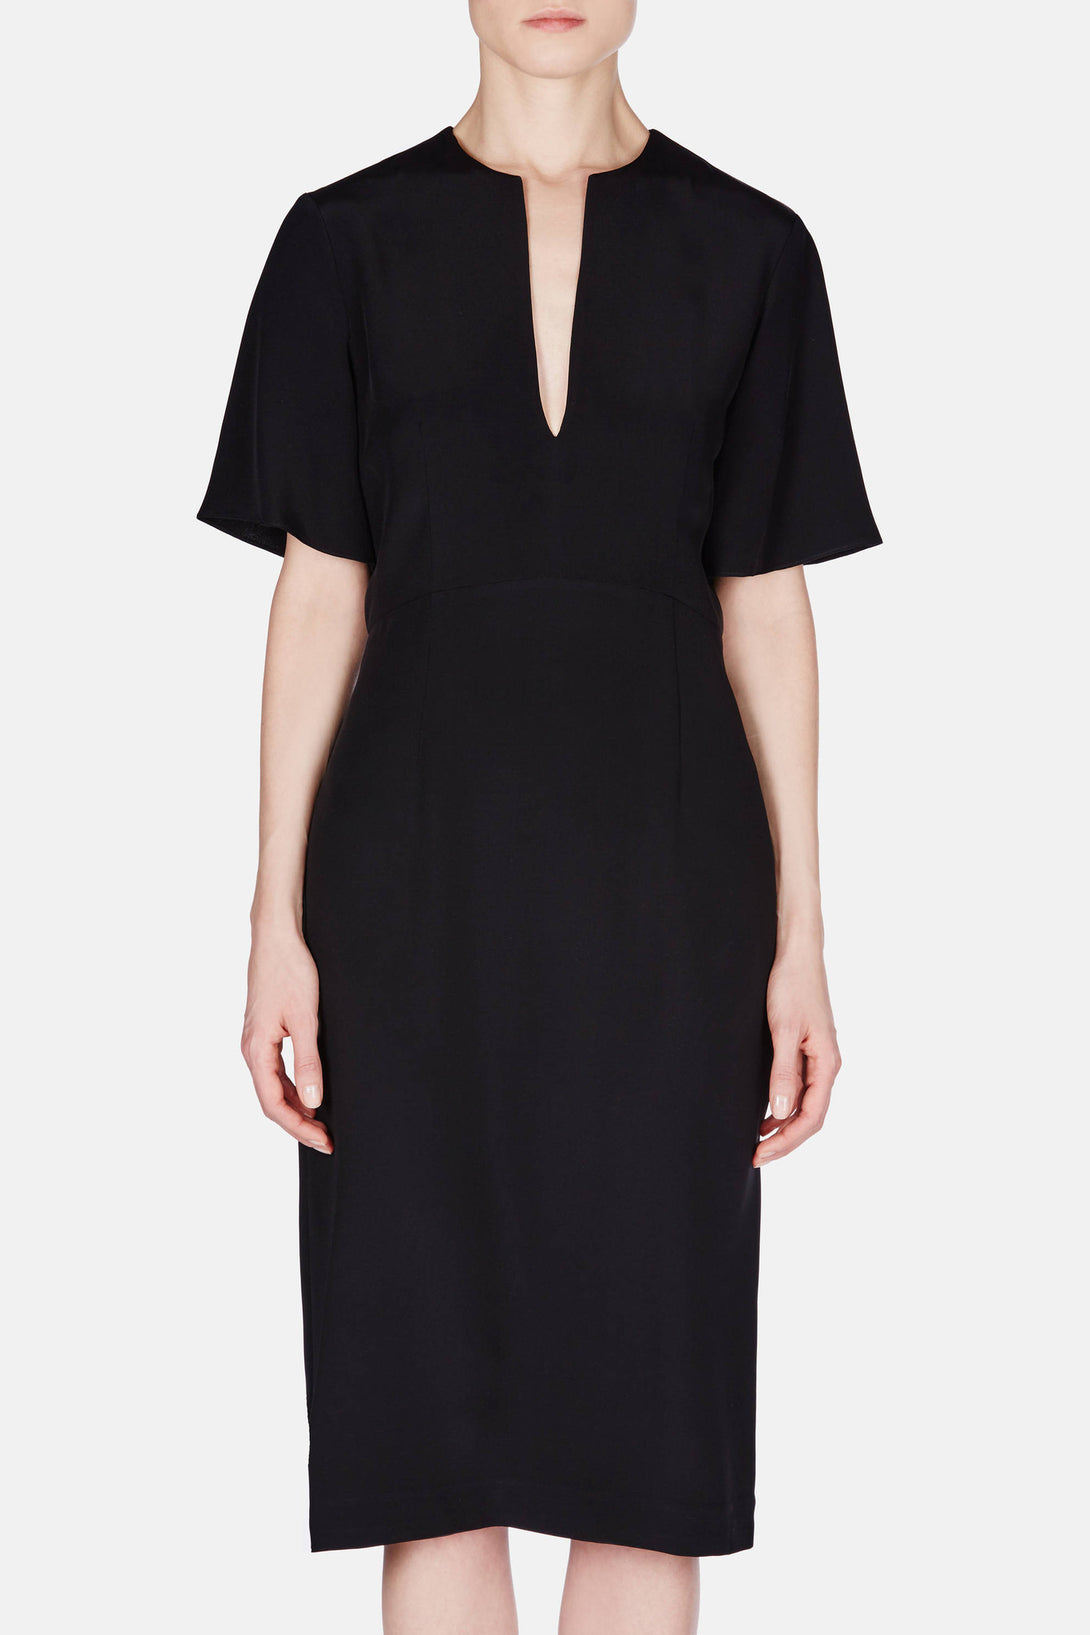 Dress 22 Deep V Dress - Black